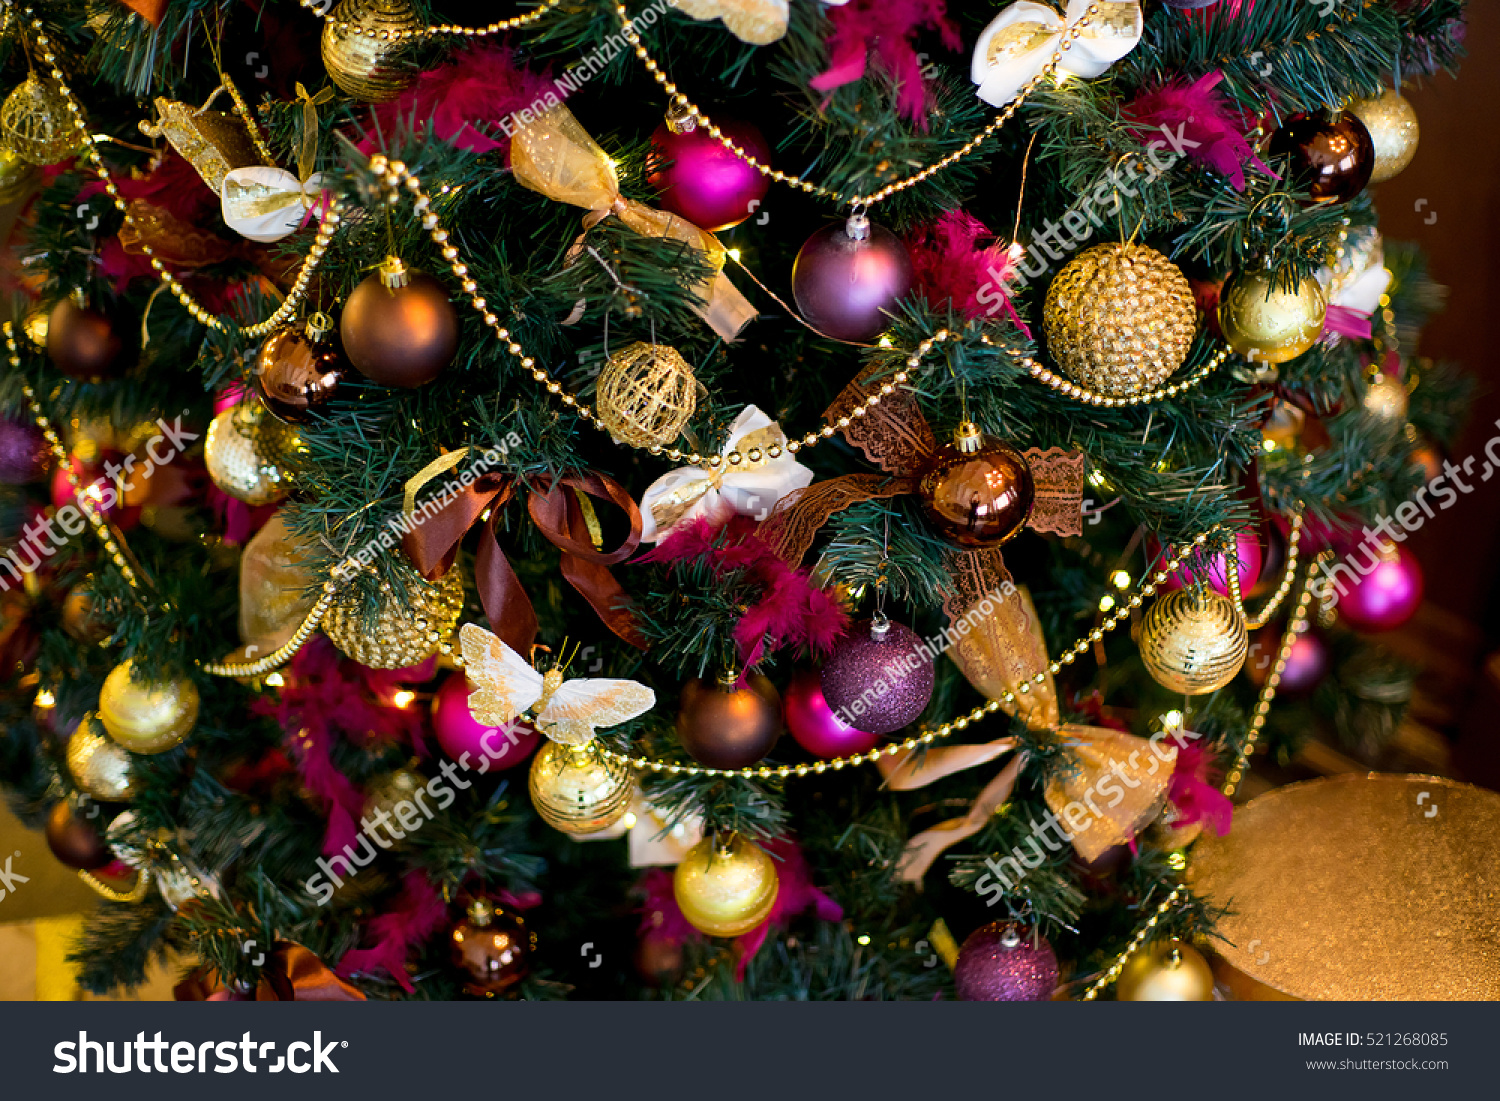 Christmas tree mirror chandelier christmas interior stock photo christmas tree mirror chandelier christmas interior stock photo 521268085 shutterstock arubaitofo Gallery